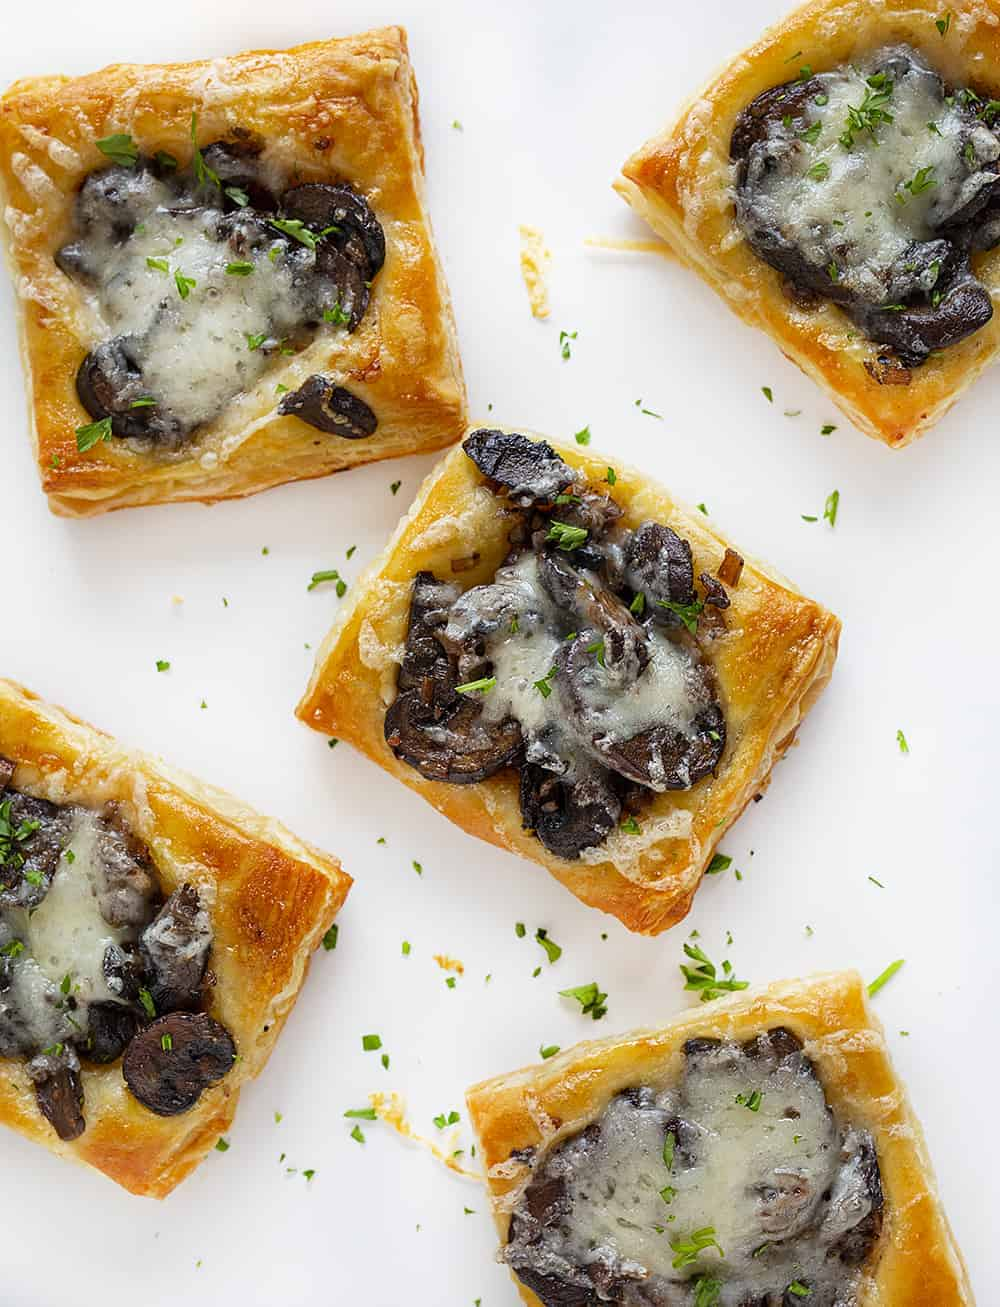 Overhead view of Cheesy Mushroom Pastries